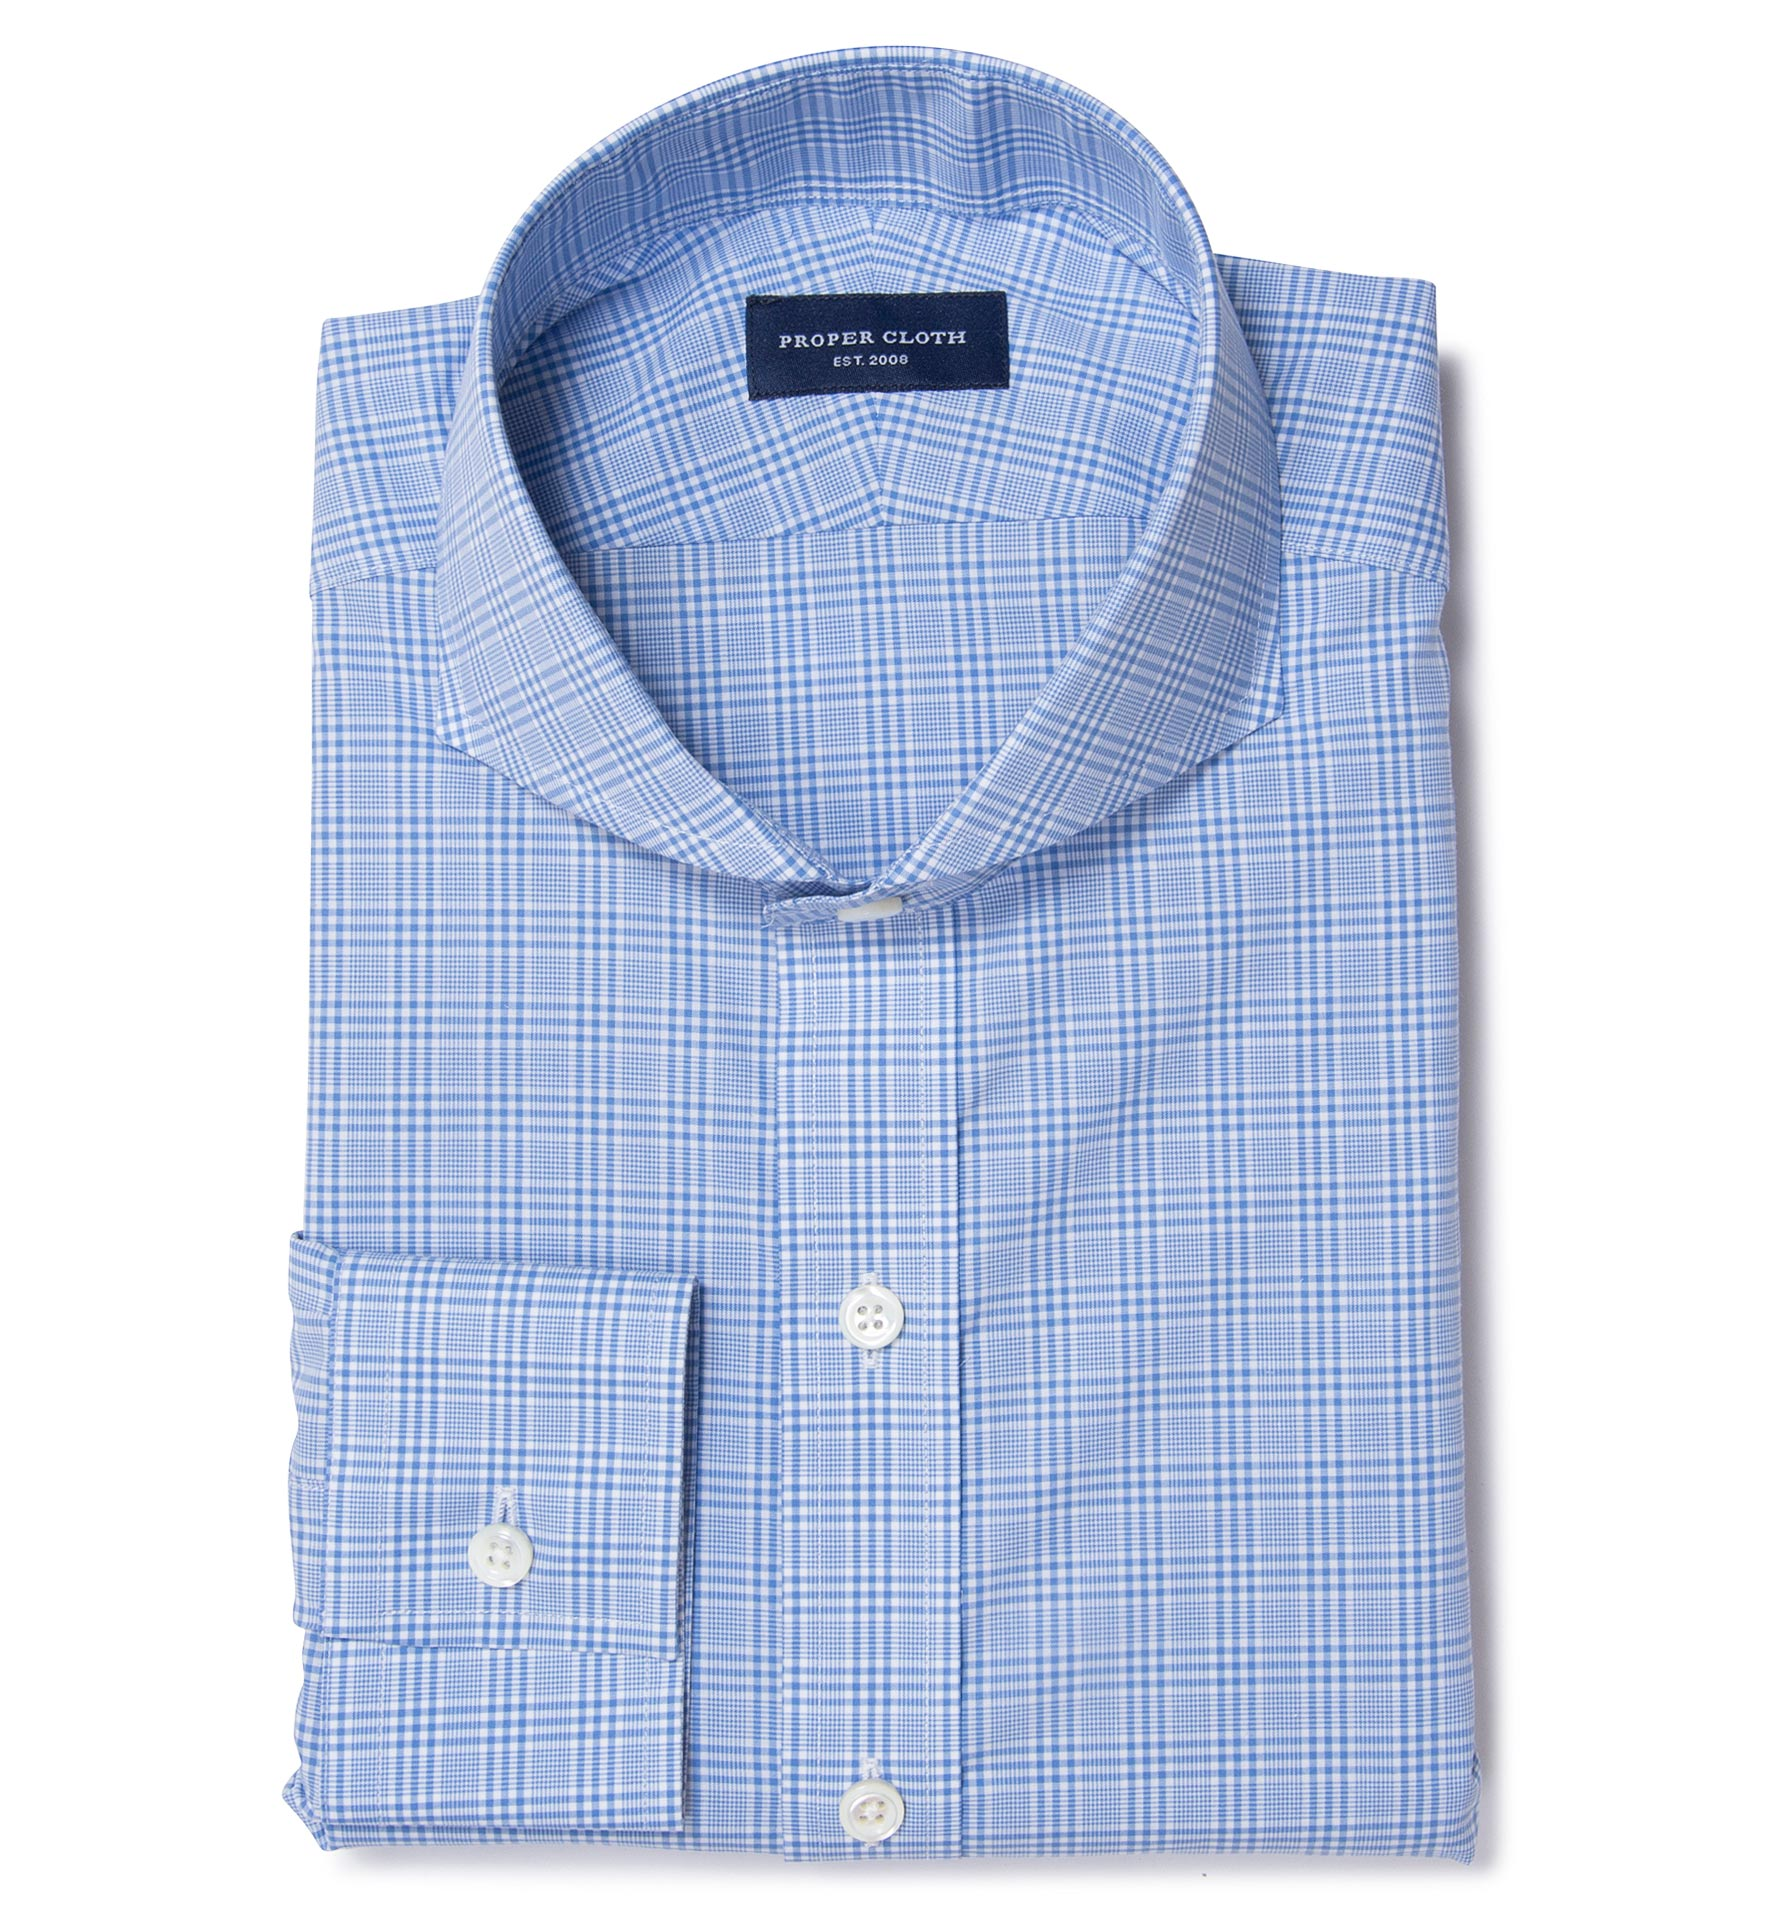 Thomas Mason Light Blue Glen Plaid Custom Dress Shirt by Proper Cloth